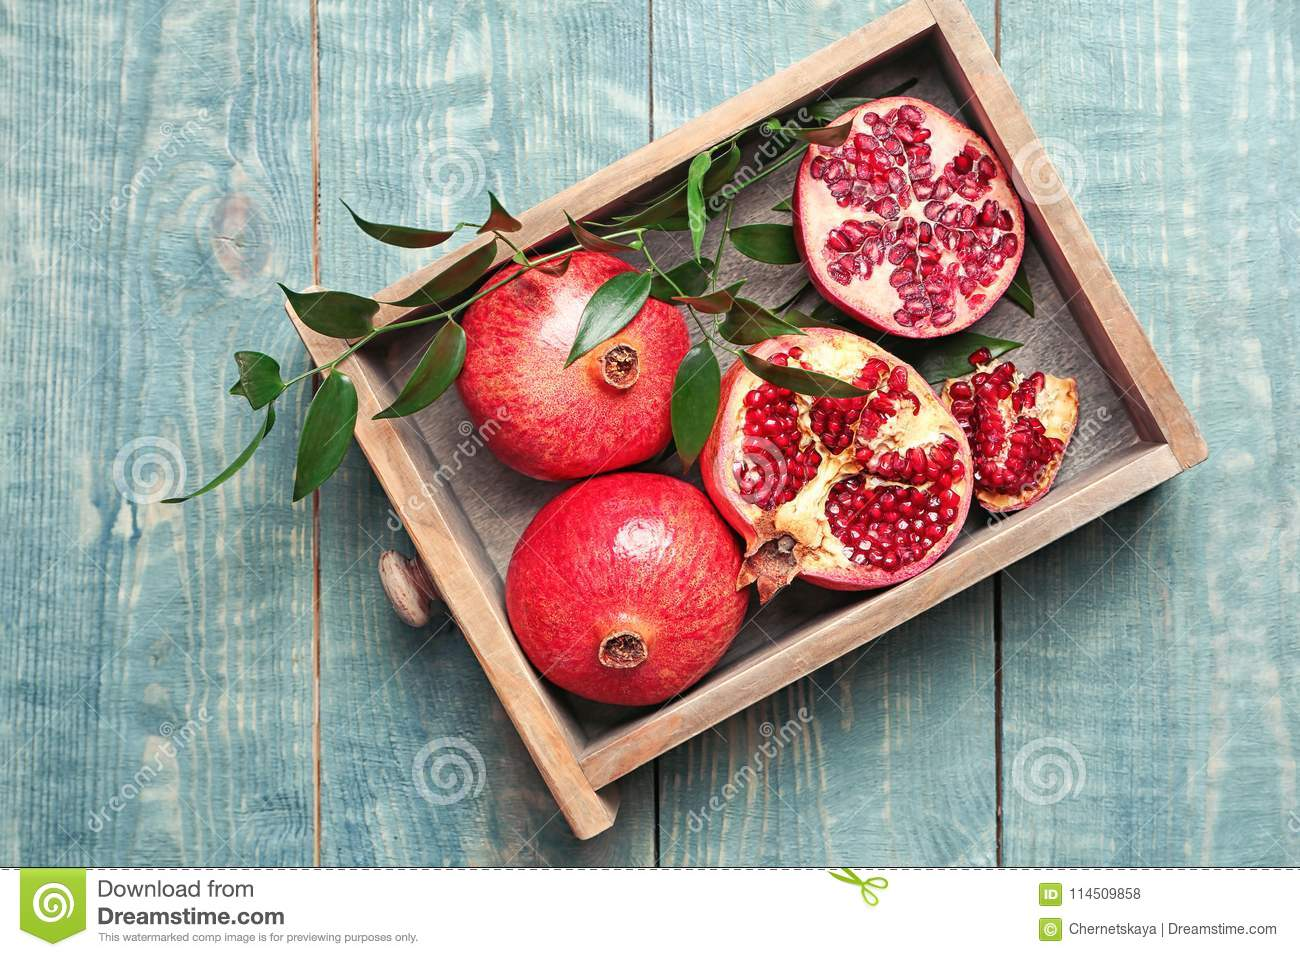 Drawer with pomegranates